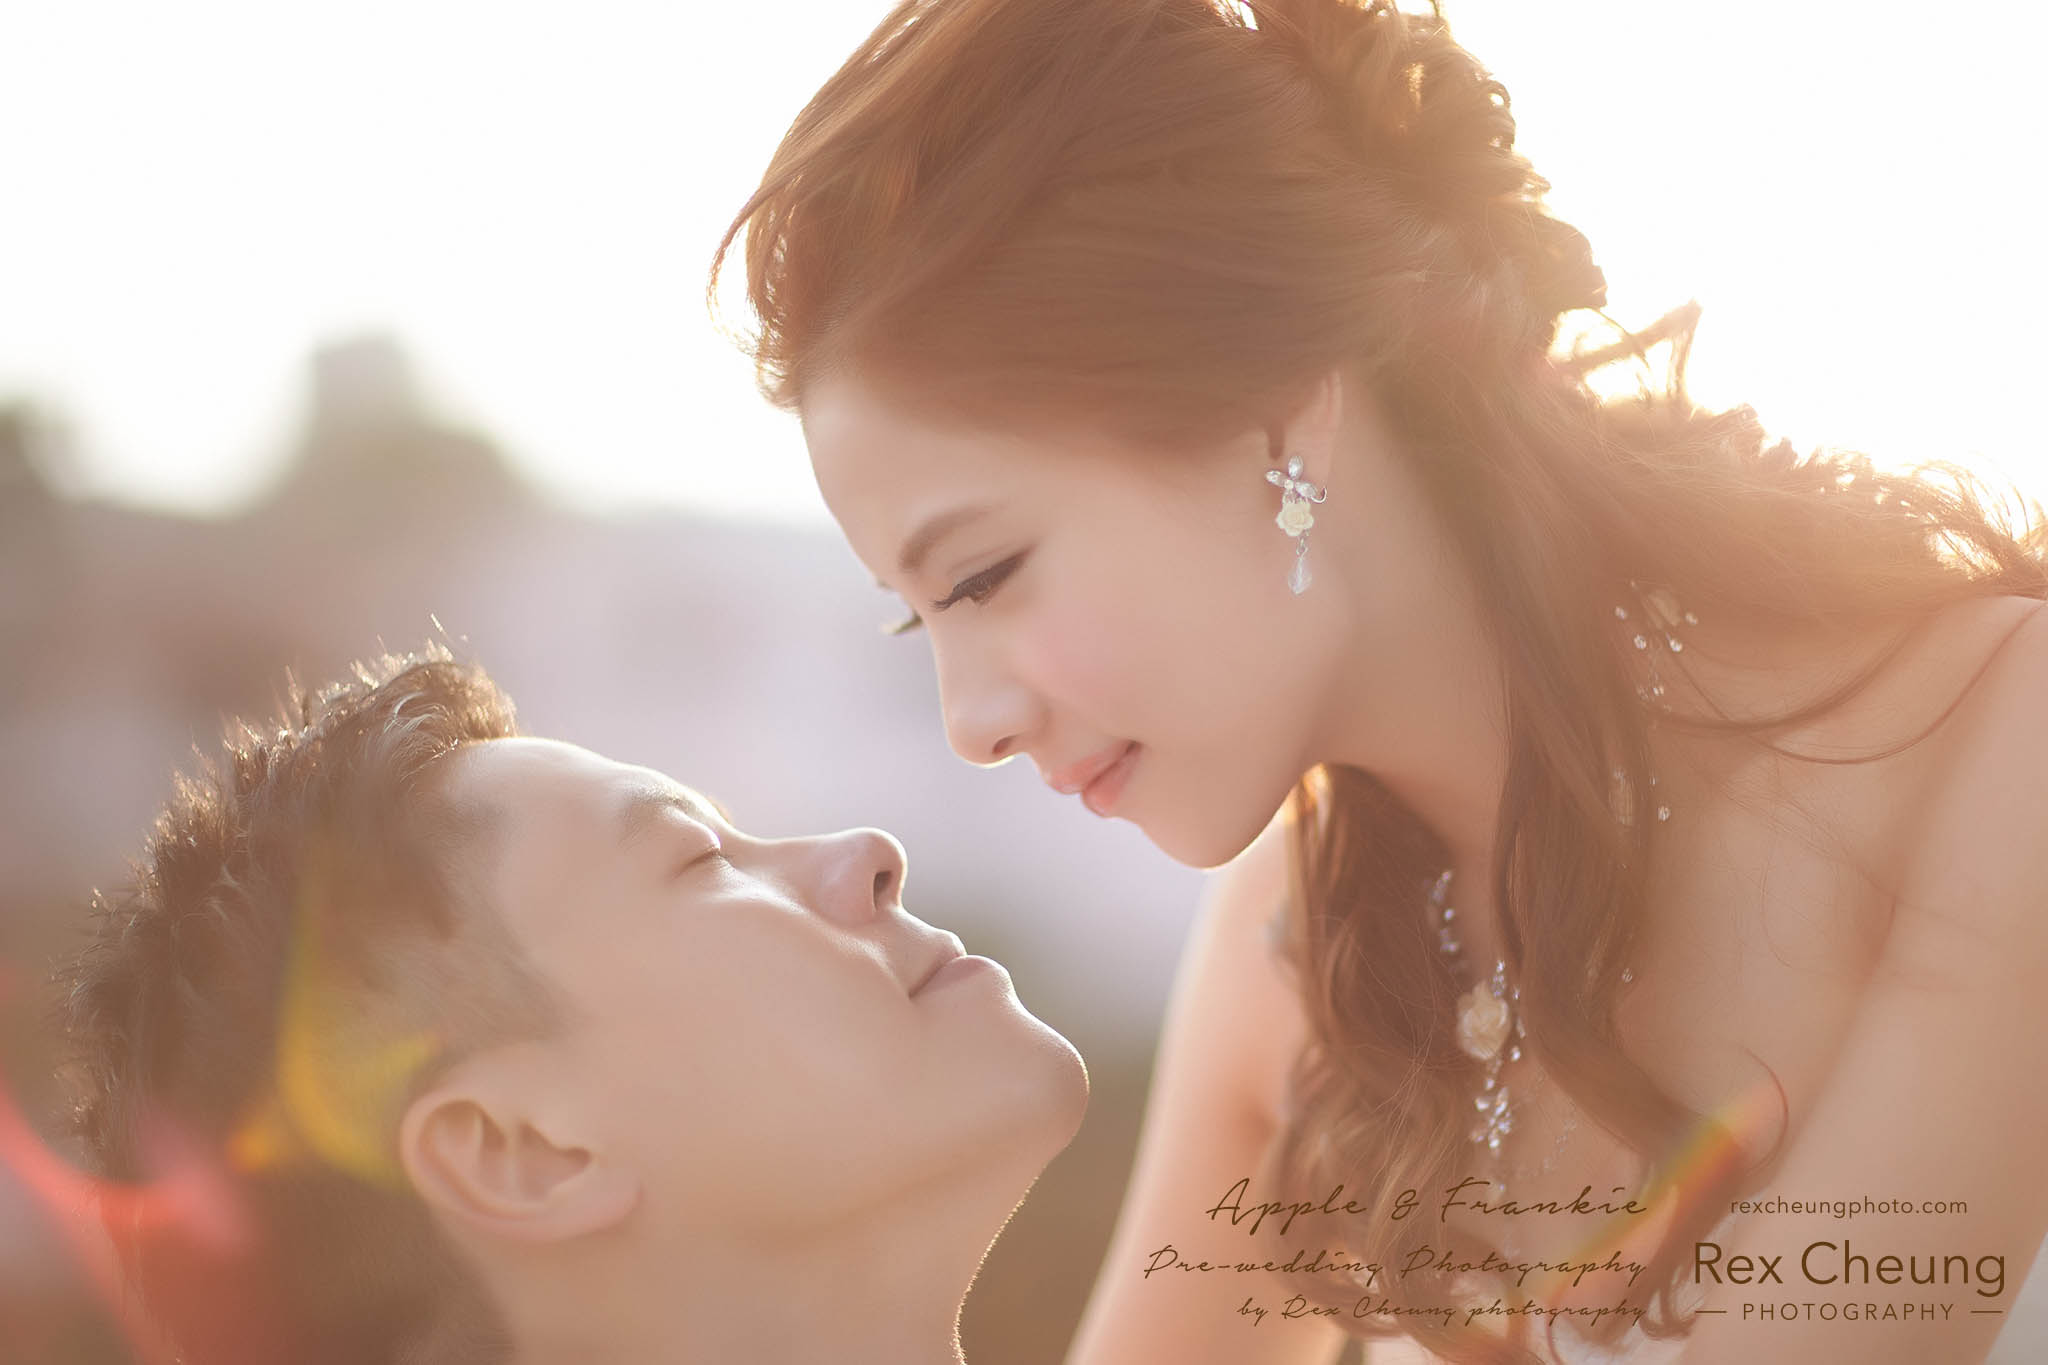 Rex Cheung Photo 婚紗攝影